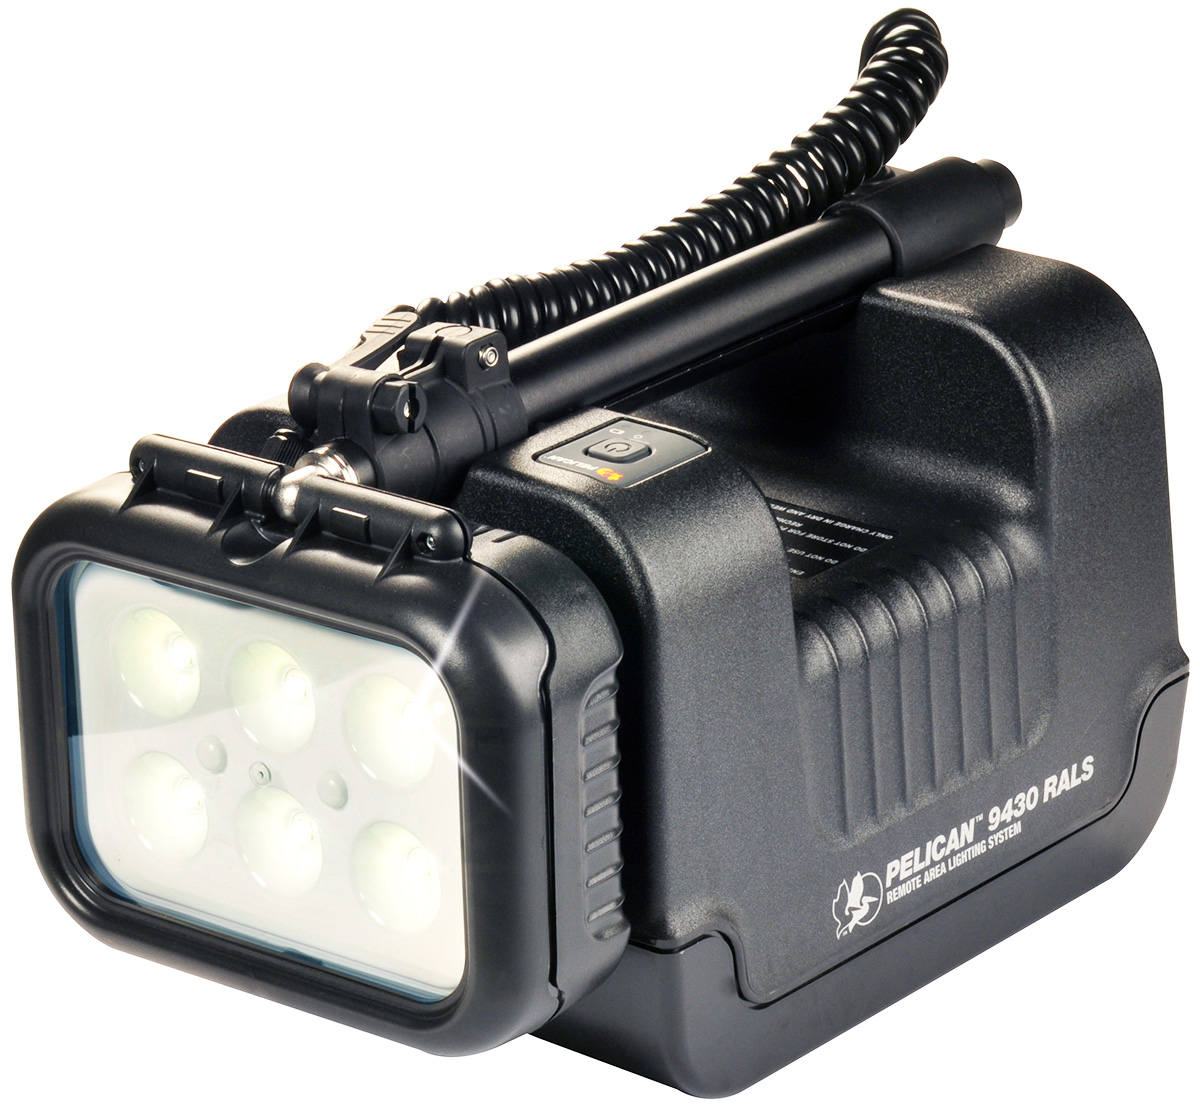 pelican peli products 9430 portable work emergency led light